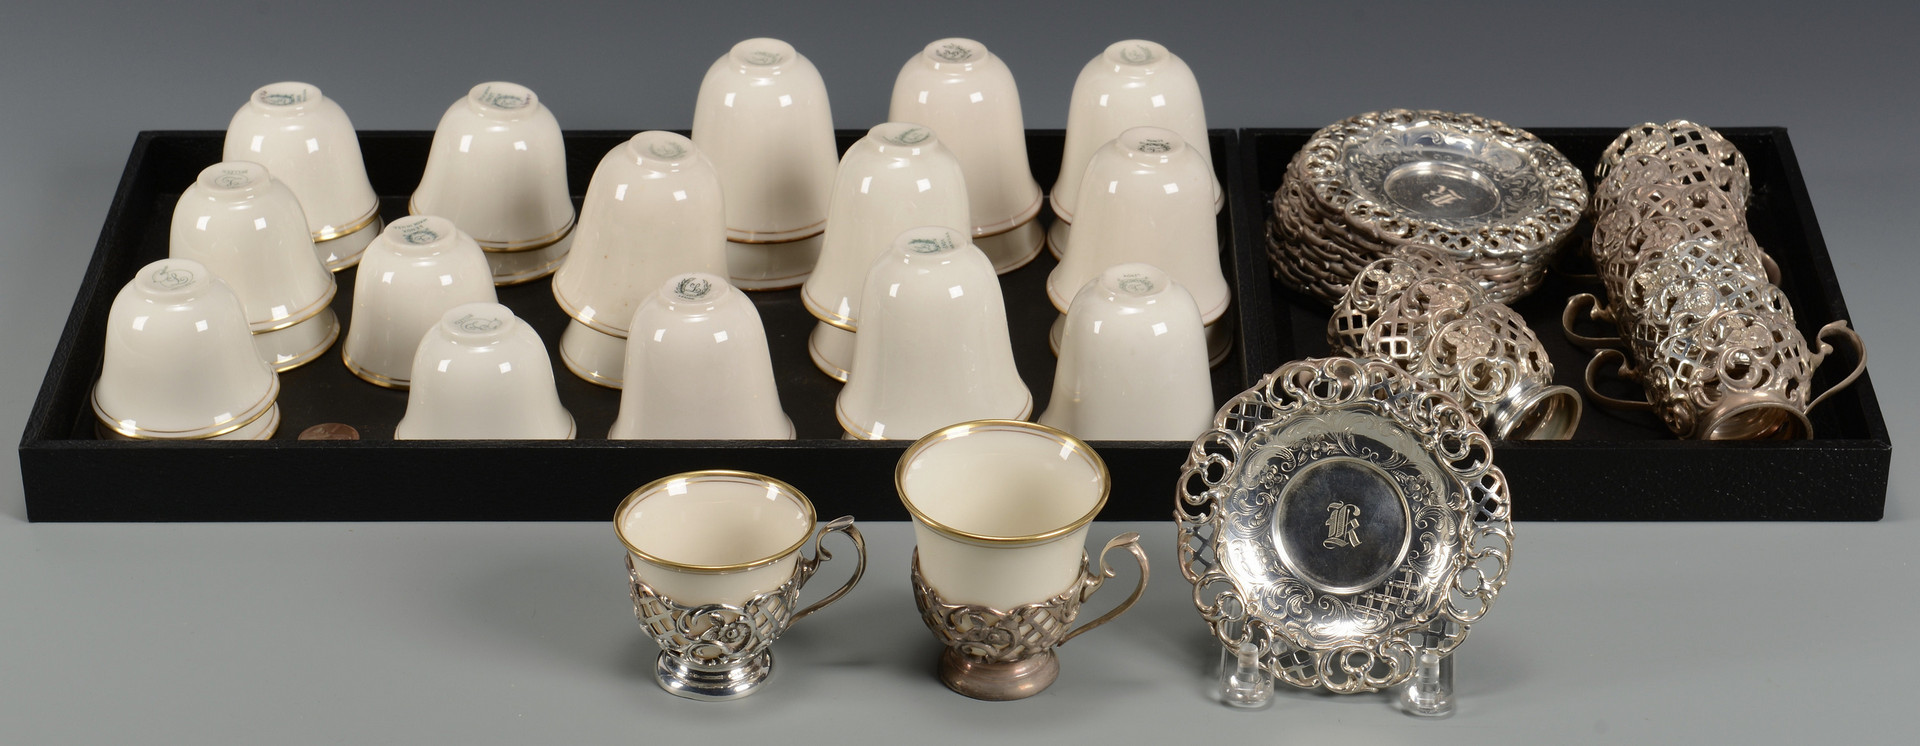 Lot 610: Sterling and Lenox Demitasse Set